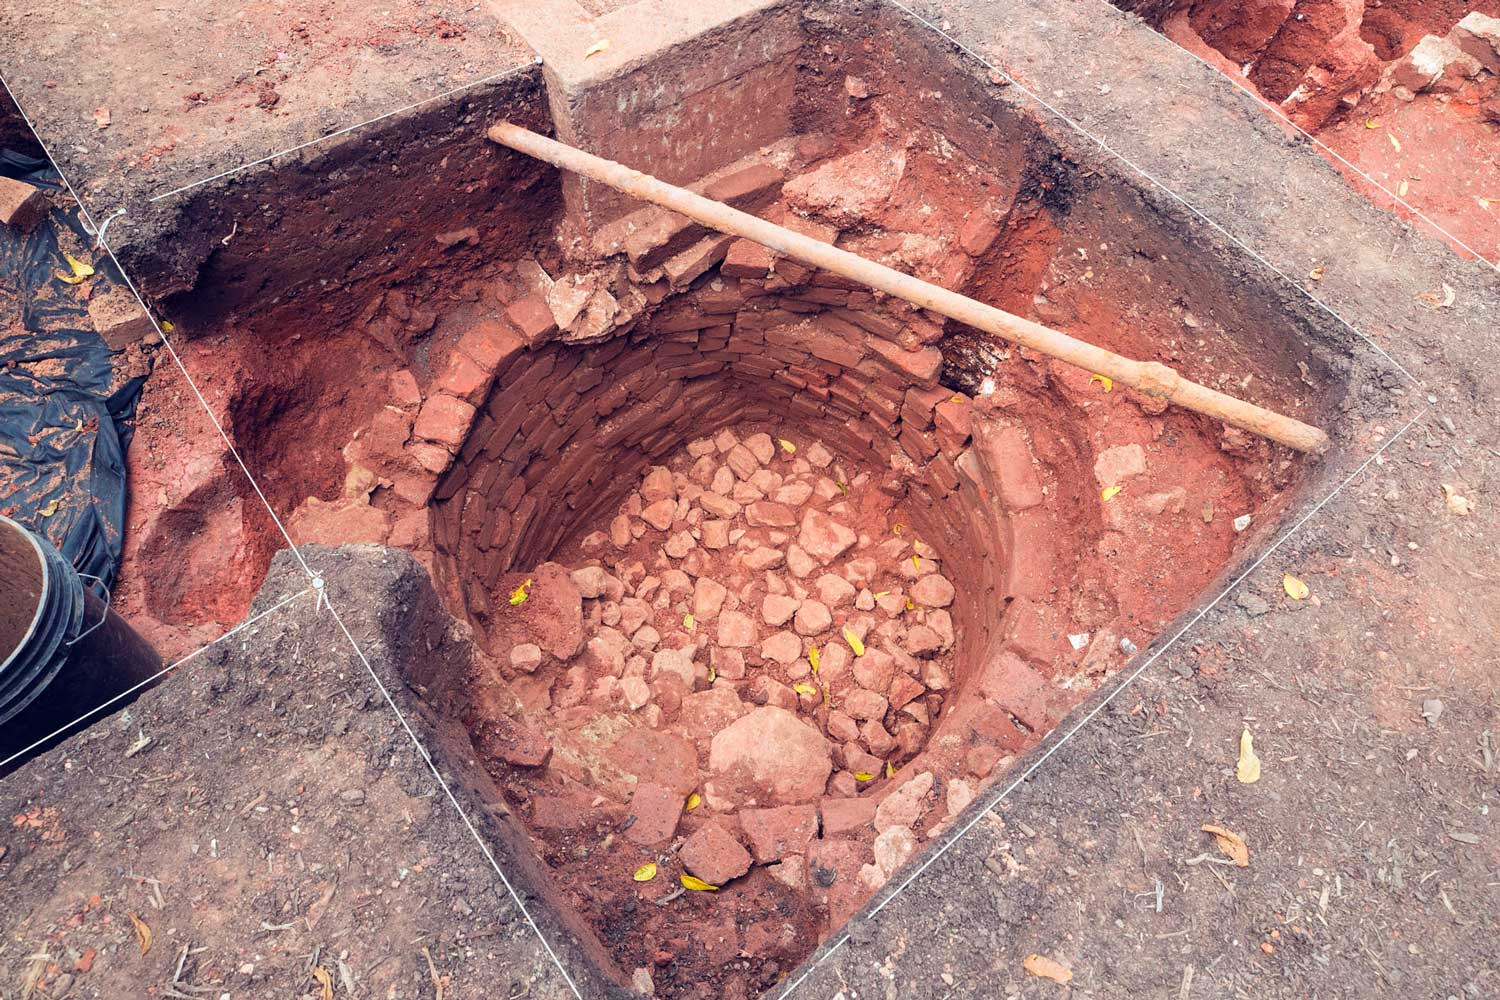 When decommissioned, the well was filled with stones and bricks.